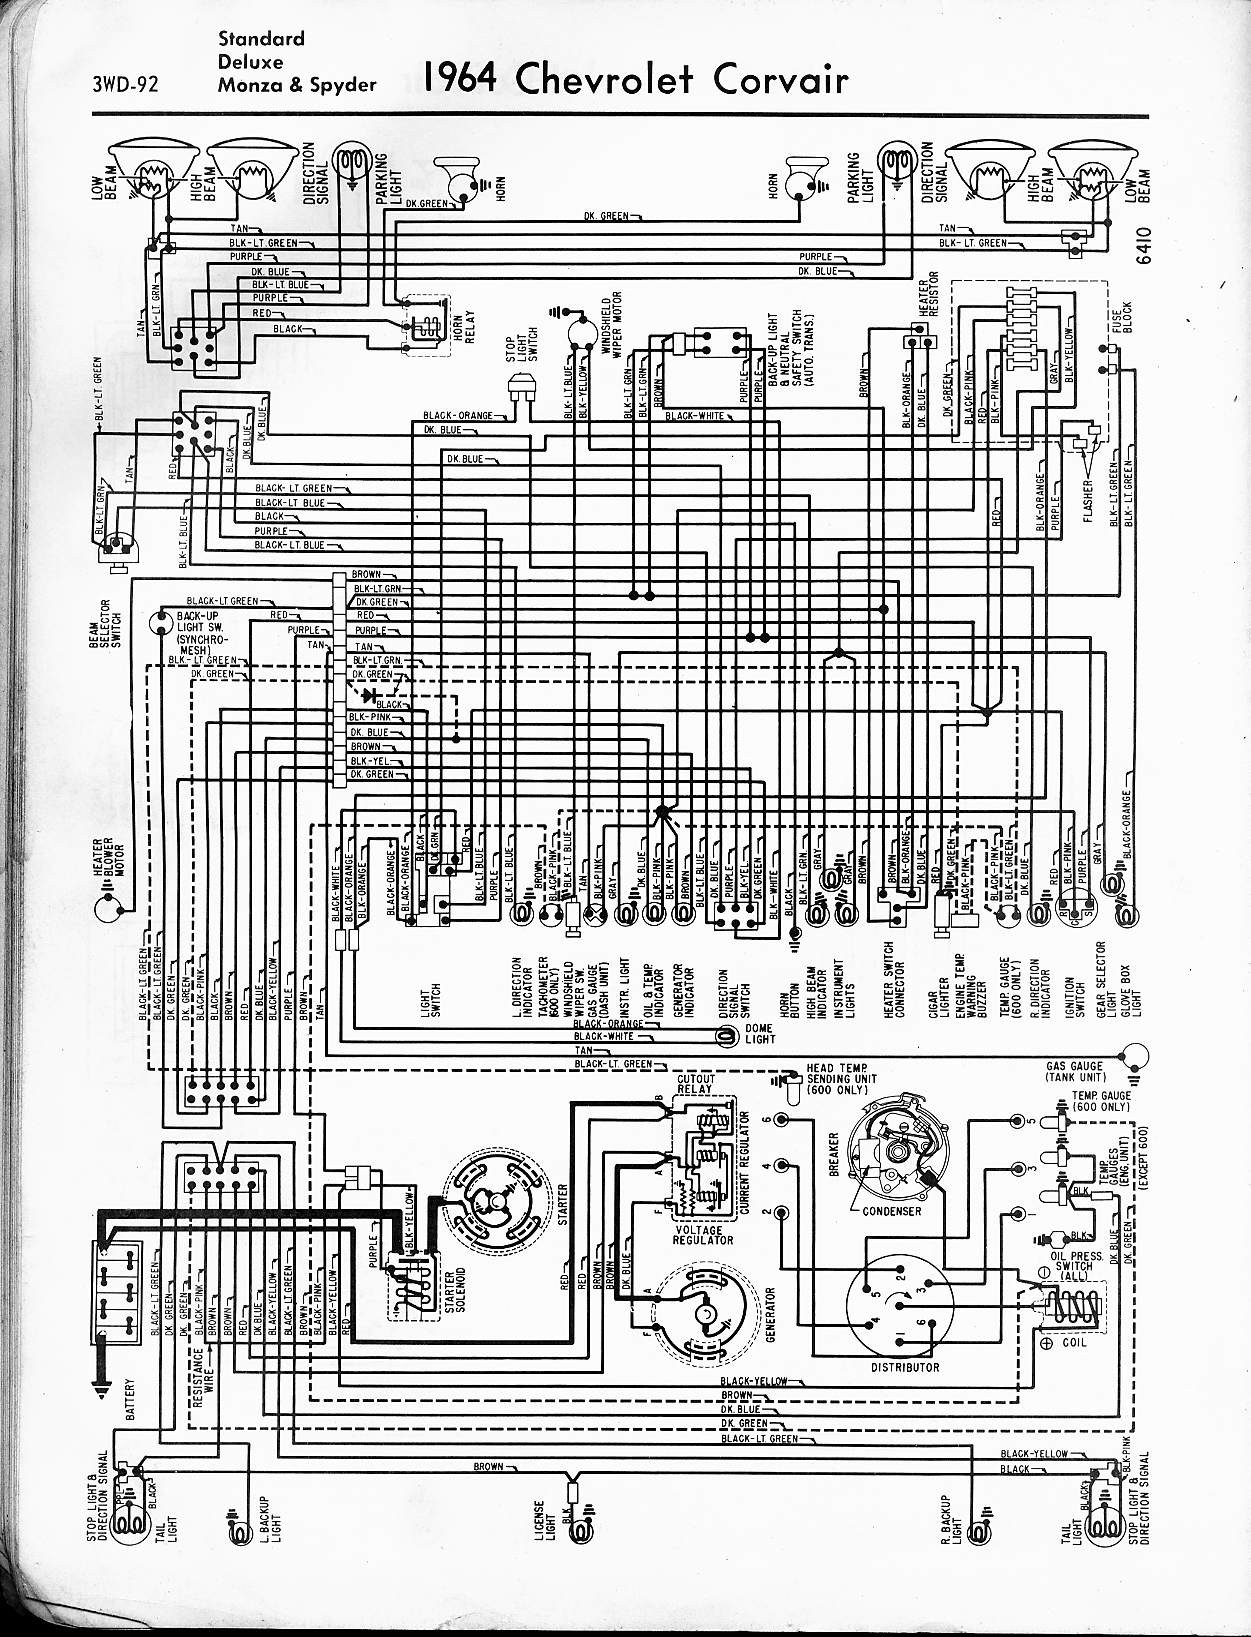 1970 chevelle malibu wiring diagram viper max winch 64 wire center